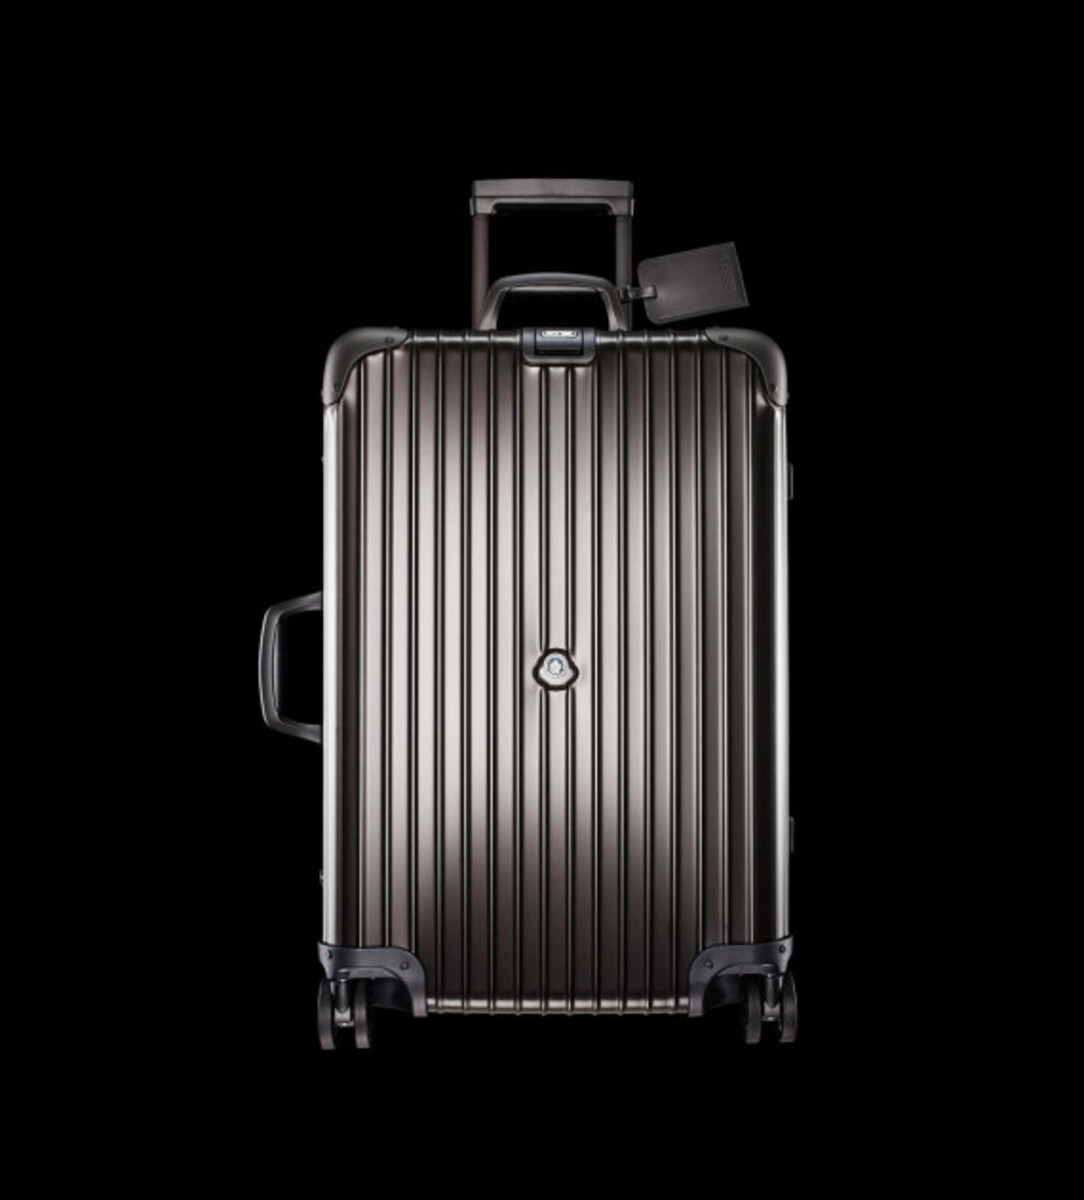 rimowa-and-moncler-luggage-collection-06